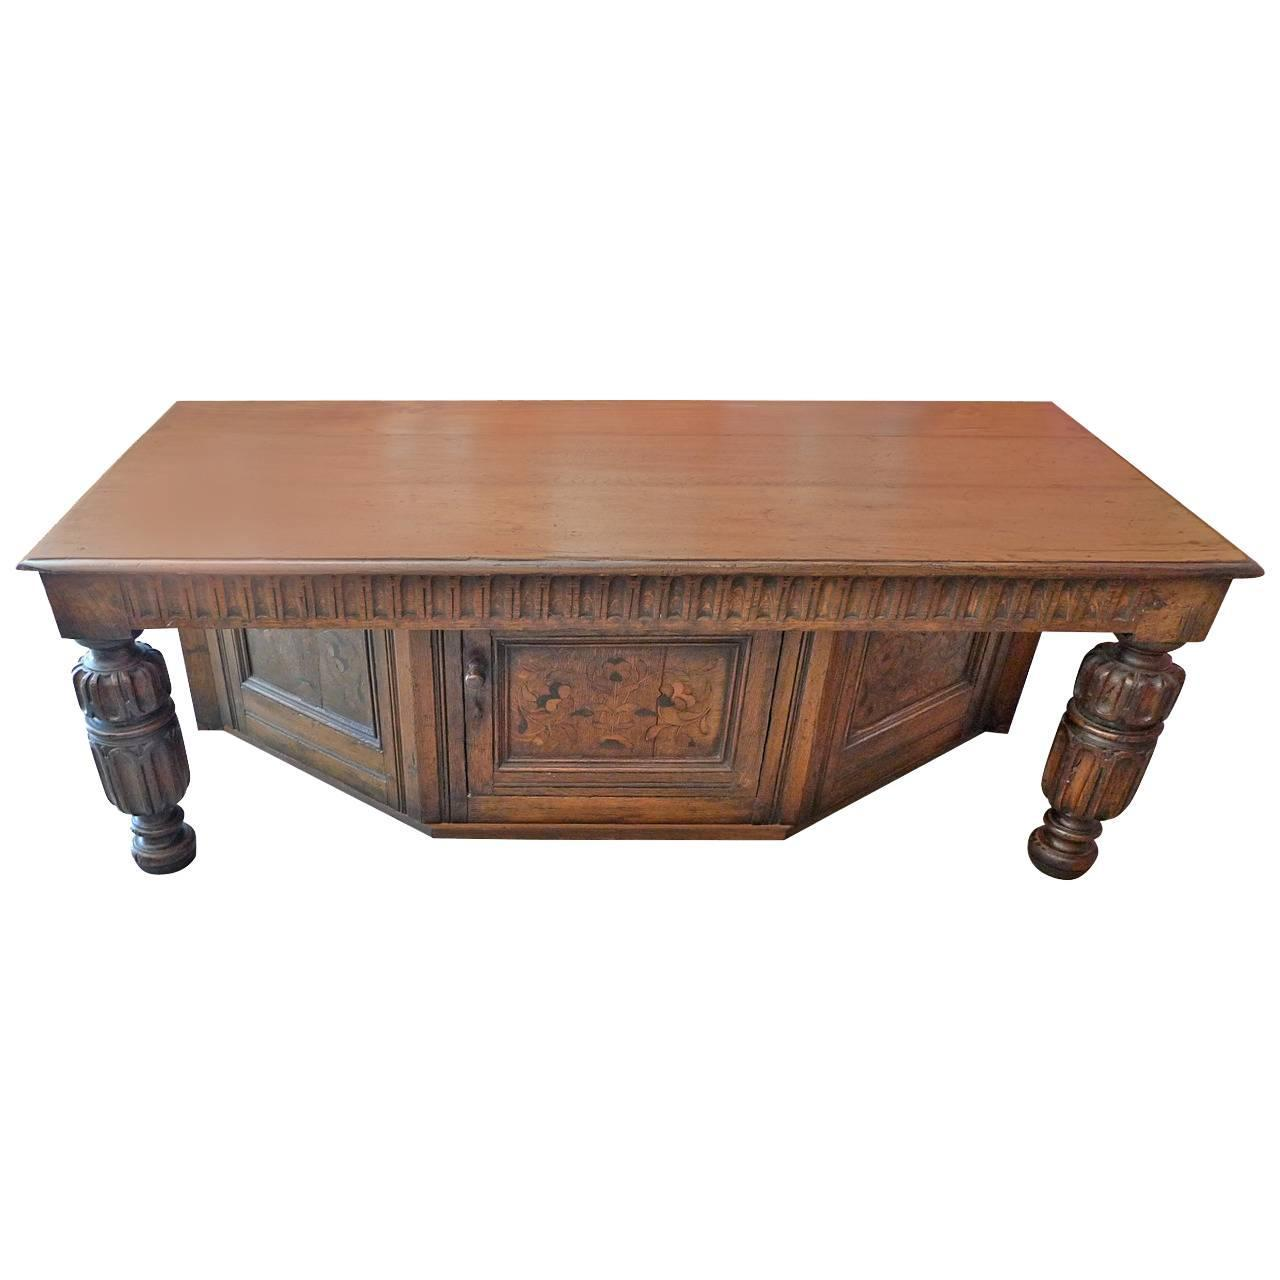 Spanish 19th century carved coffee table for sale at 1stdibs Carved coffee table